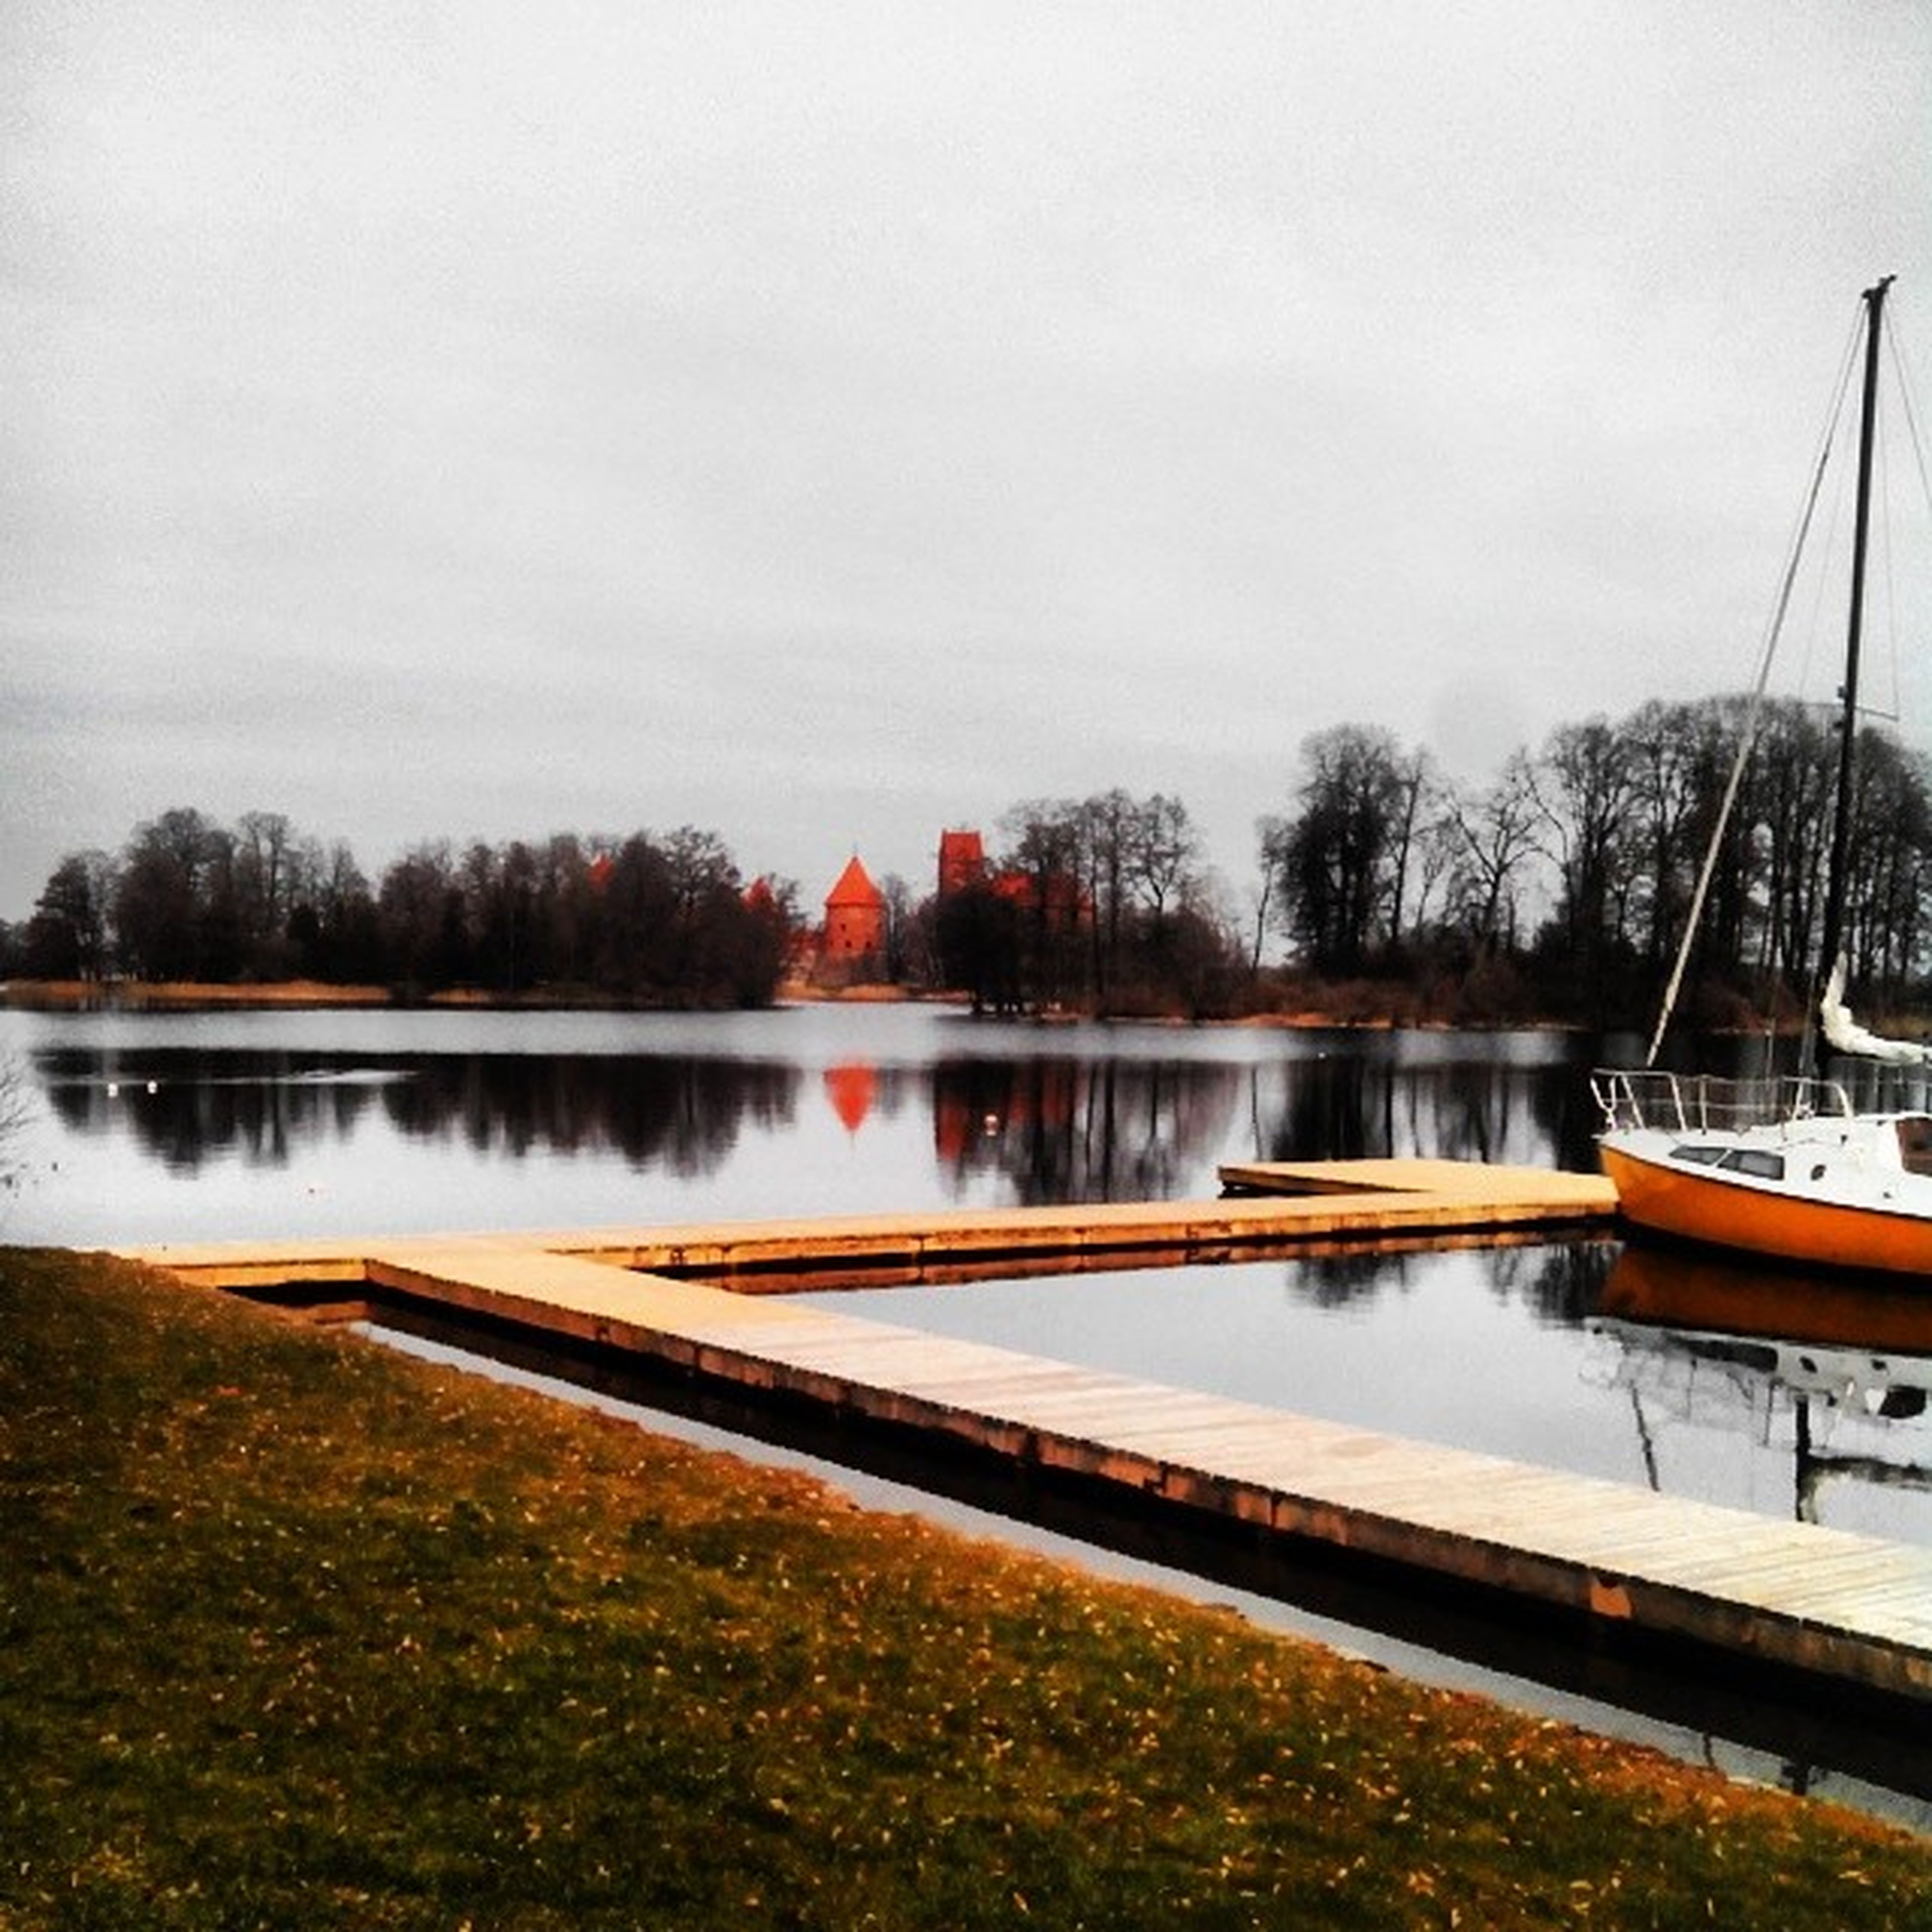 transportation, water, nautical vessel, moored, lake, boat, tree, mode of transport, reflection, sky, tranquility, tranquil scene, nature, scenics, pier, beauty in nature, river, outdoors, day, lakeshore